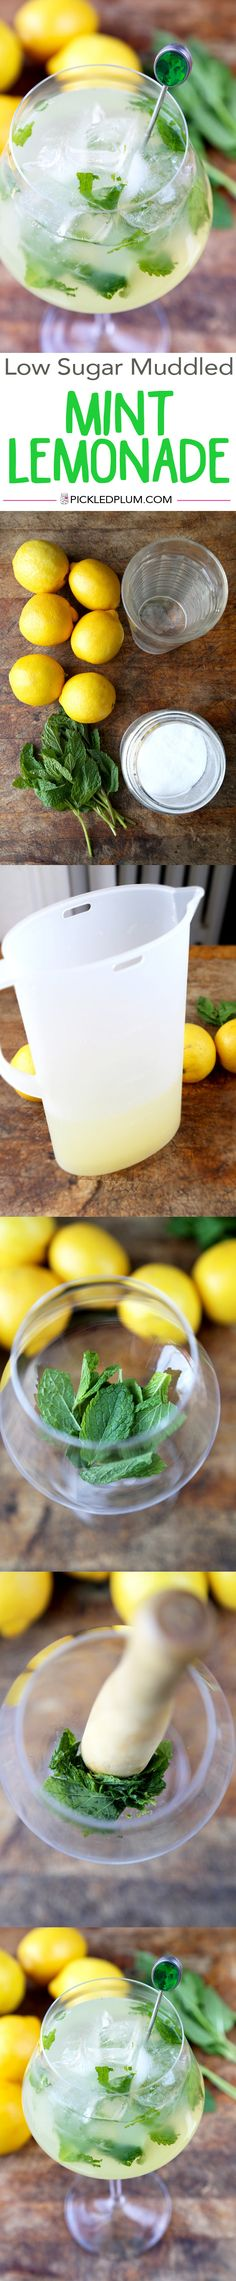 Low Sugar Mint Lemonade